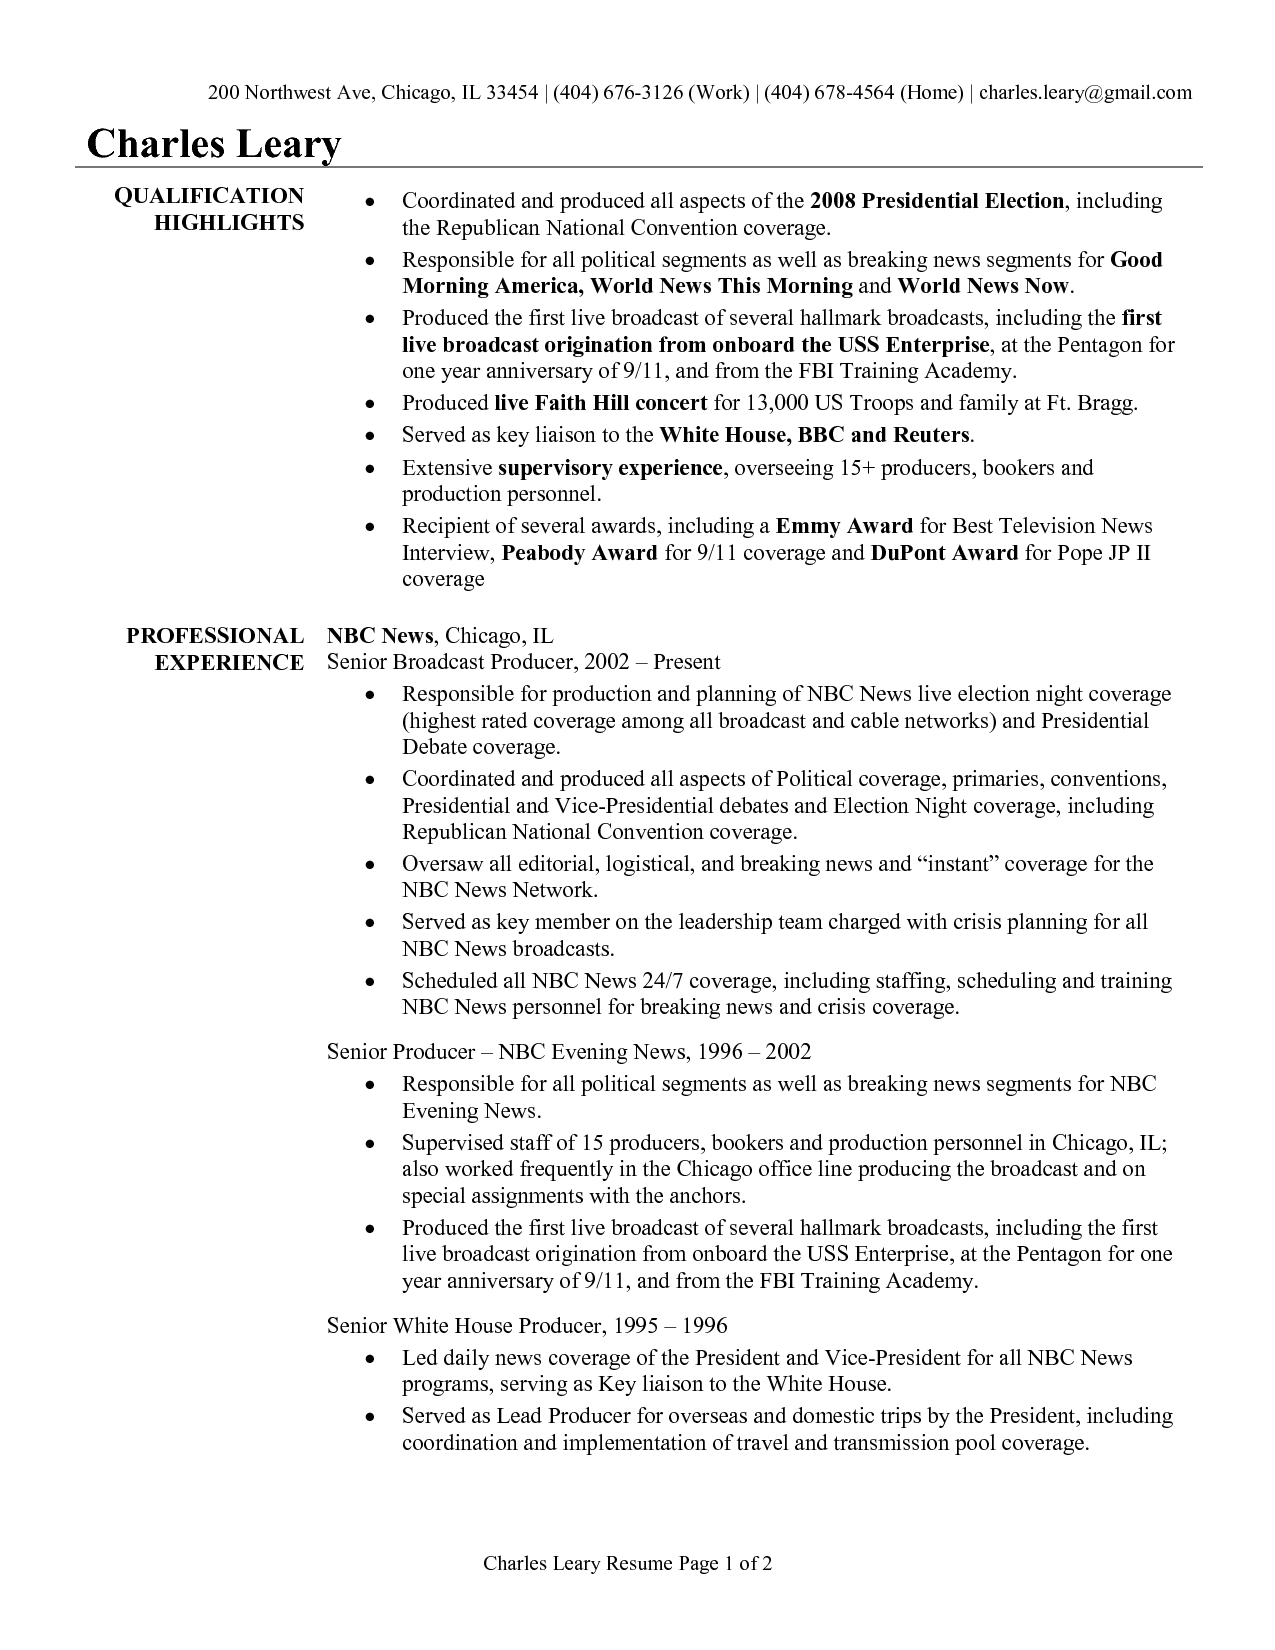 insurance producer resume cover letter for underwriter